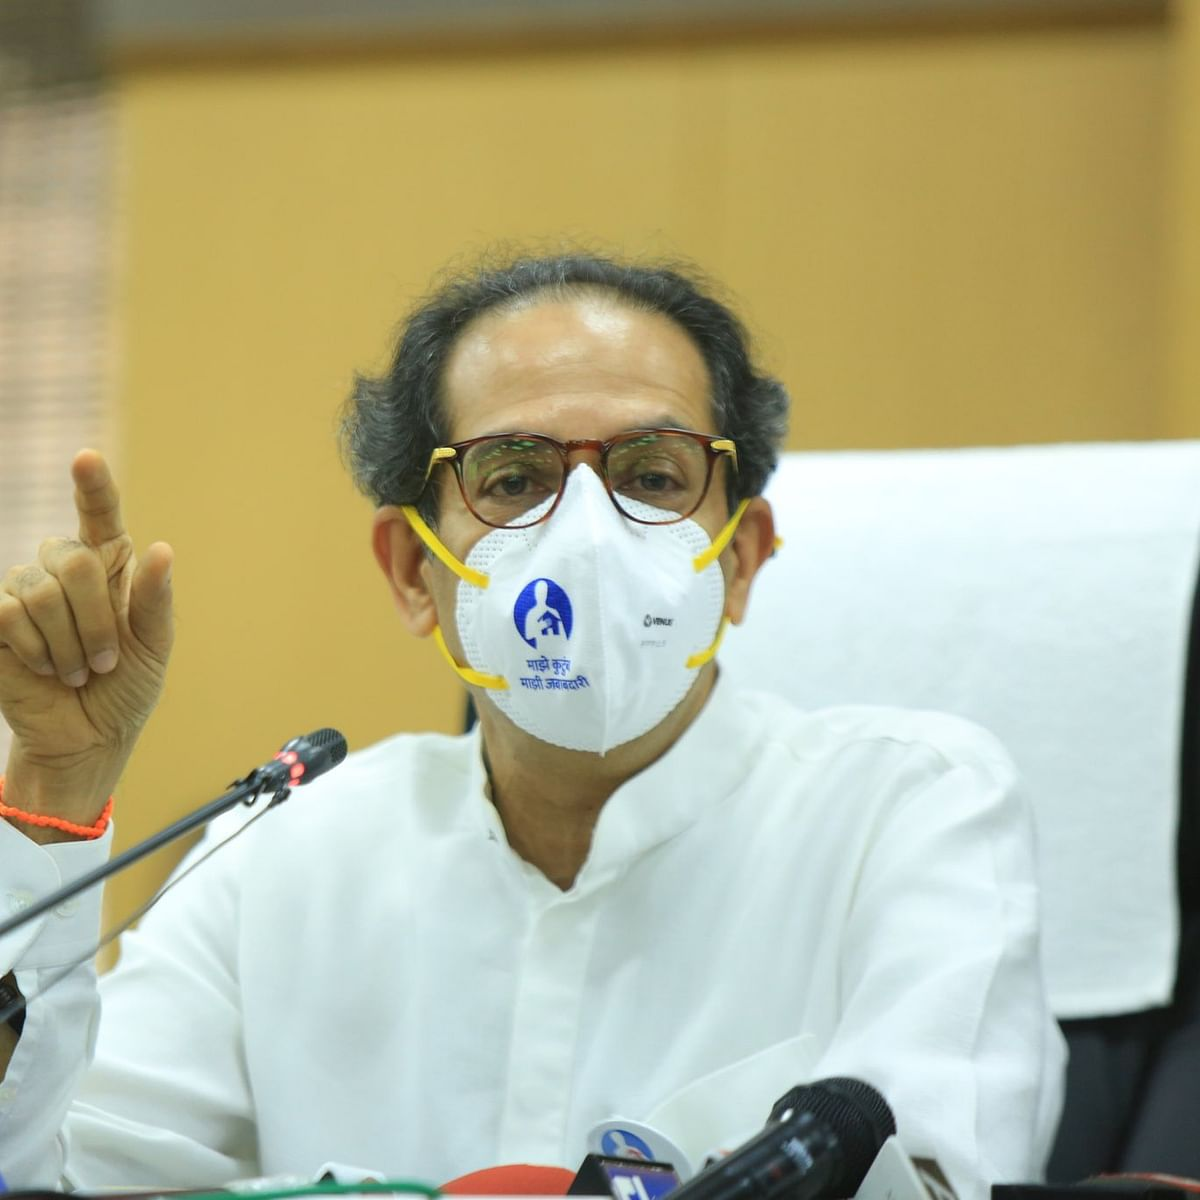 Uddhav Thackeray directs administration to increase medical facilities; Maharashtra awaits decision on lockdown